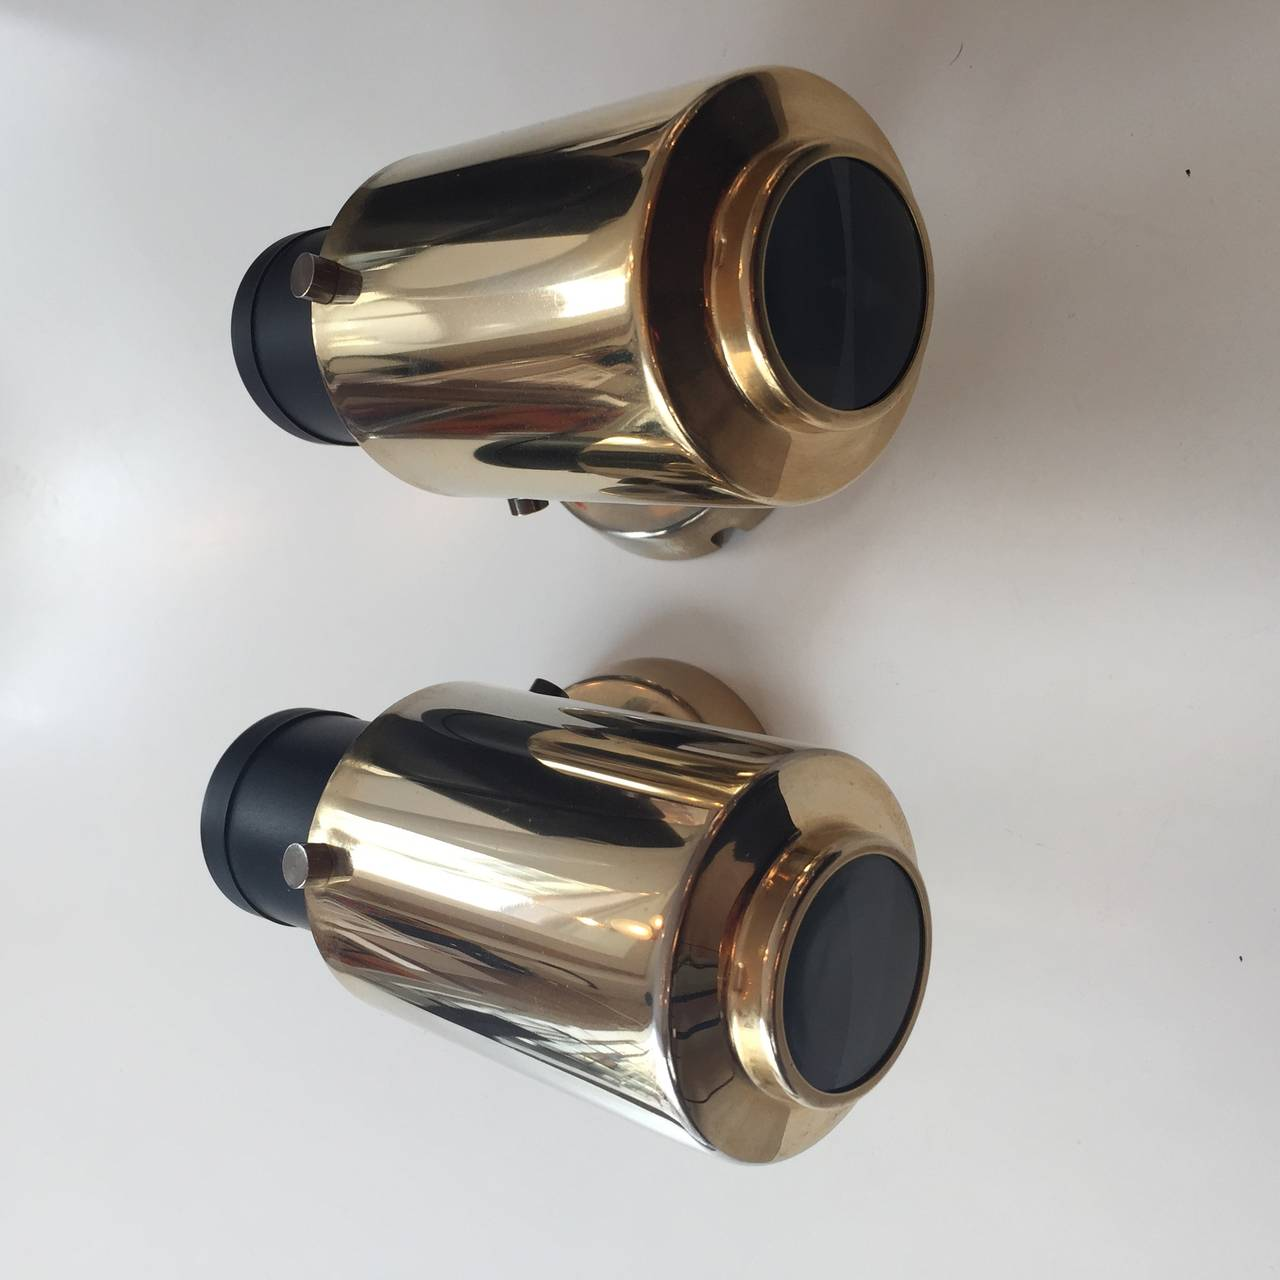 Mid-20th Century Pair of Jacques Biny Wall Lights for Lita from the 1950s For Sale